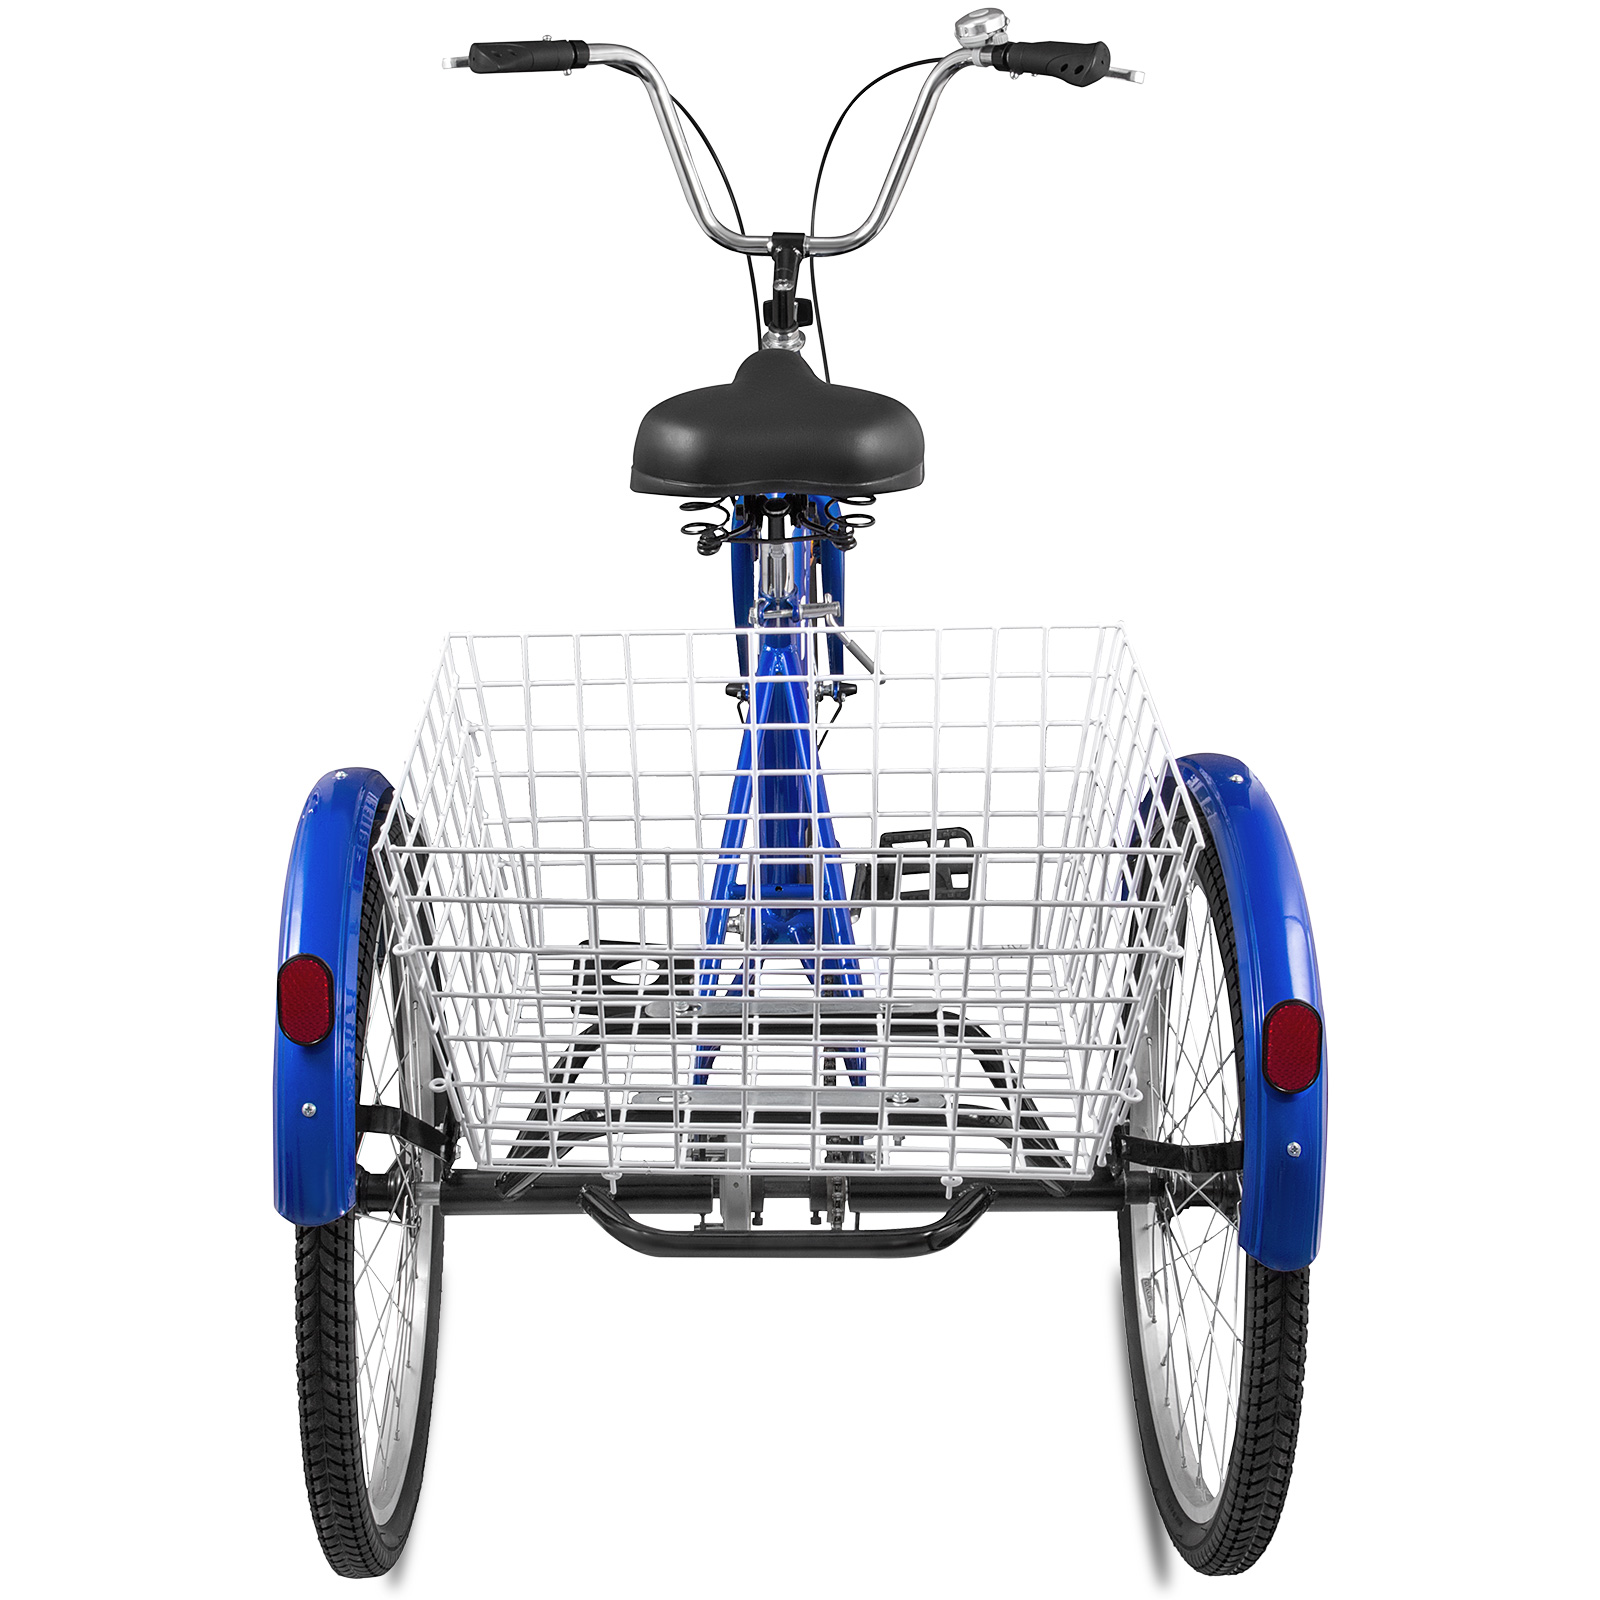 20-24-26-034-Adult-Tricycle-1-7-Speed-3-Wheel-Large-Basket-For-Shopping-Optional thumbnail 204